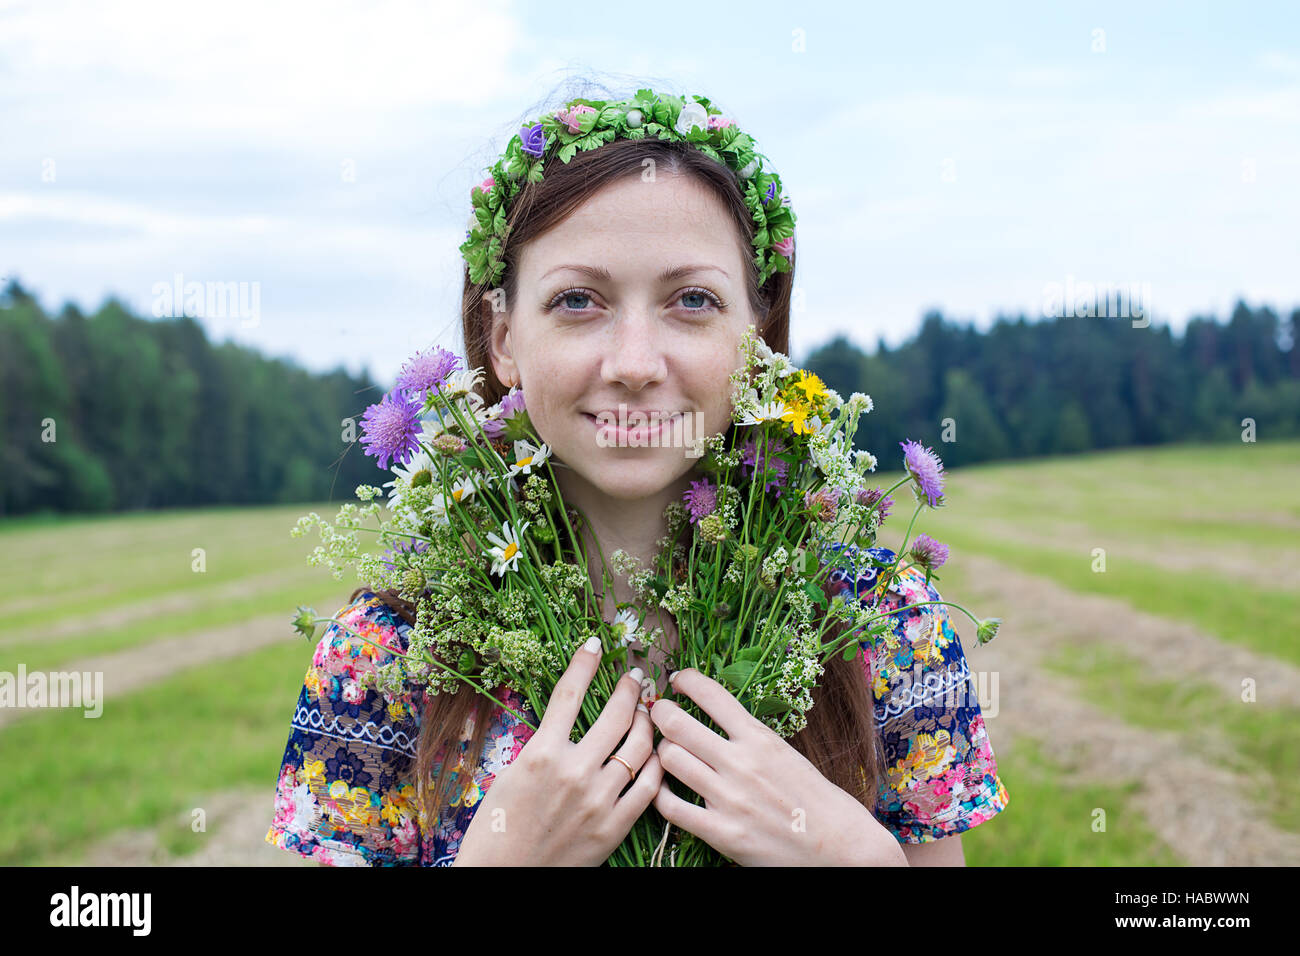 Freckled girl standing with splitting flower bouquet - Stock Image